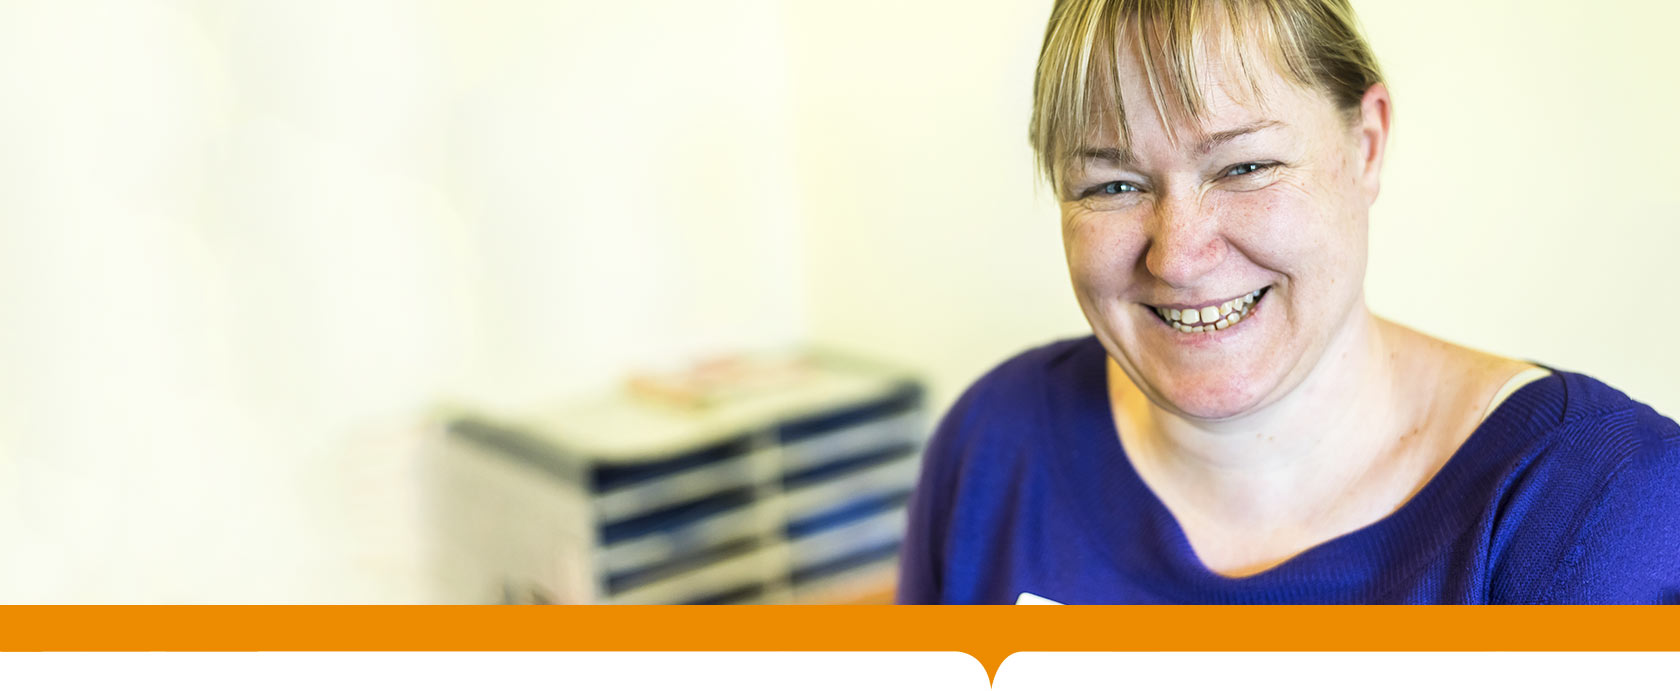 Join our team - working in forensic healthcare